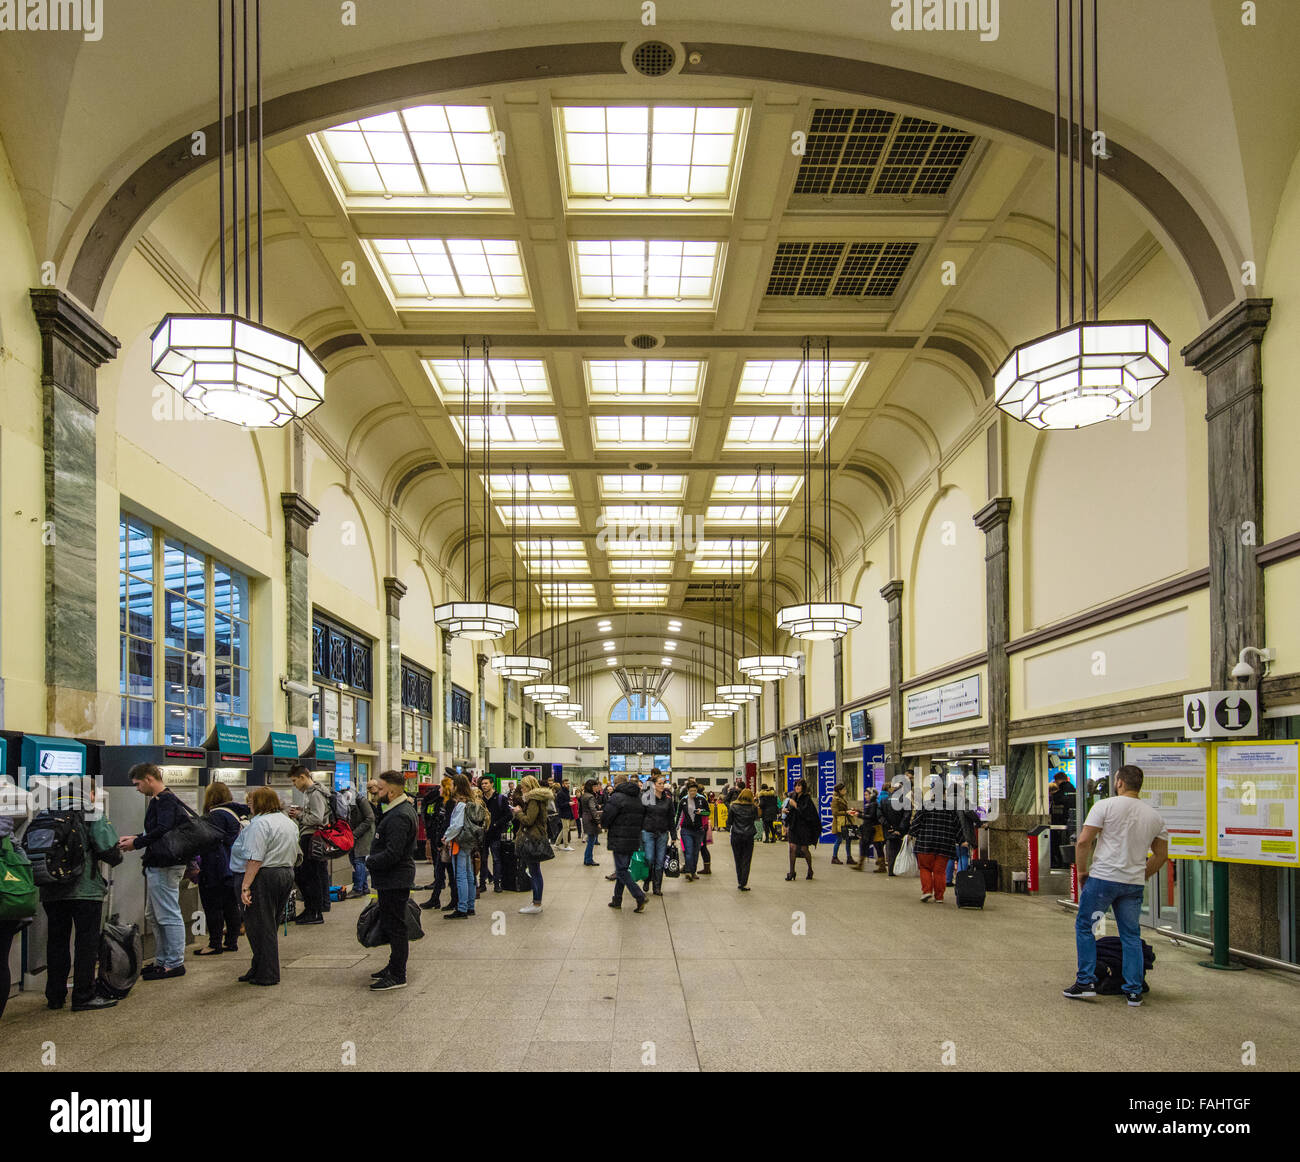 art deco interior of cardiff central railway station in wales busy